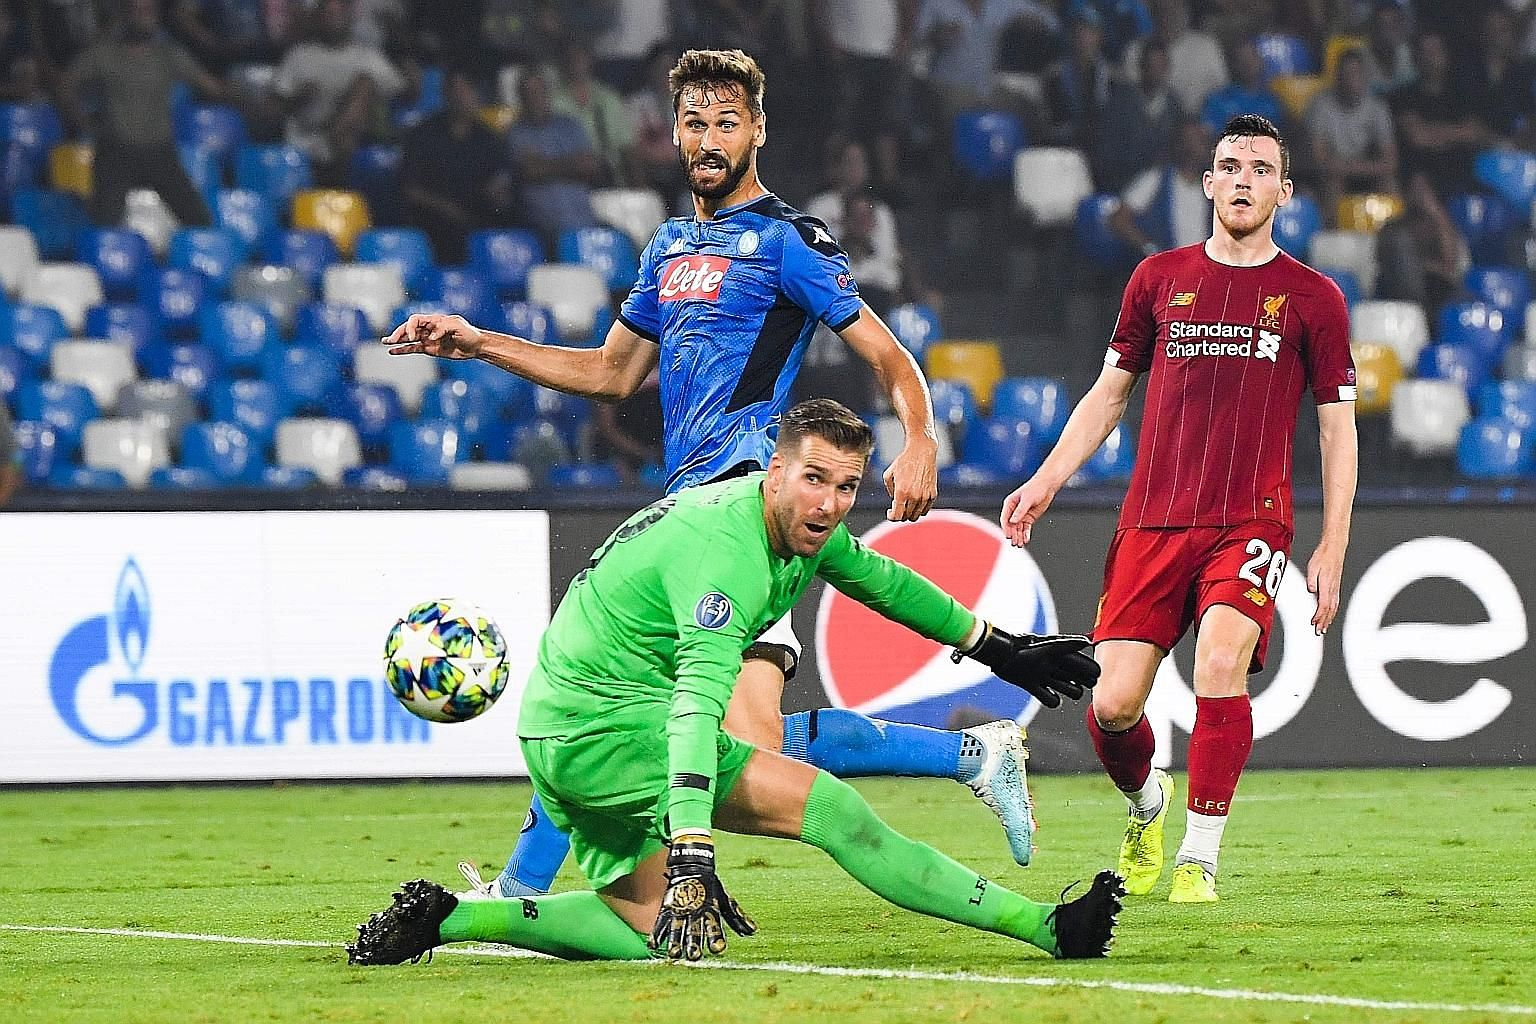 Napoli forward Fernando Llorente (in blue) scoring past Liverpool goalkeeper Adrian during their Champions League clash on Tuesday night. Napoli won the match 2-0 thanks to a penalty and a mistake by Virgil van Dijk which Llorente took advantage of.